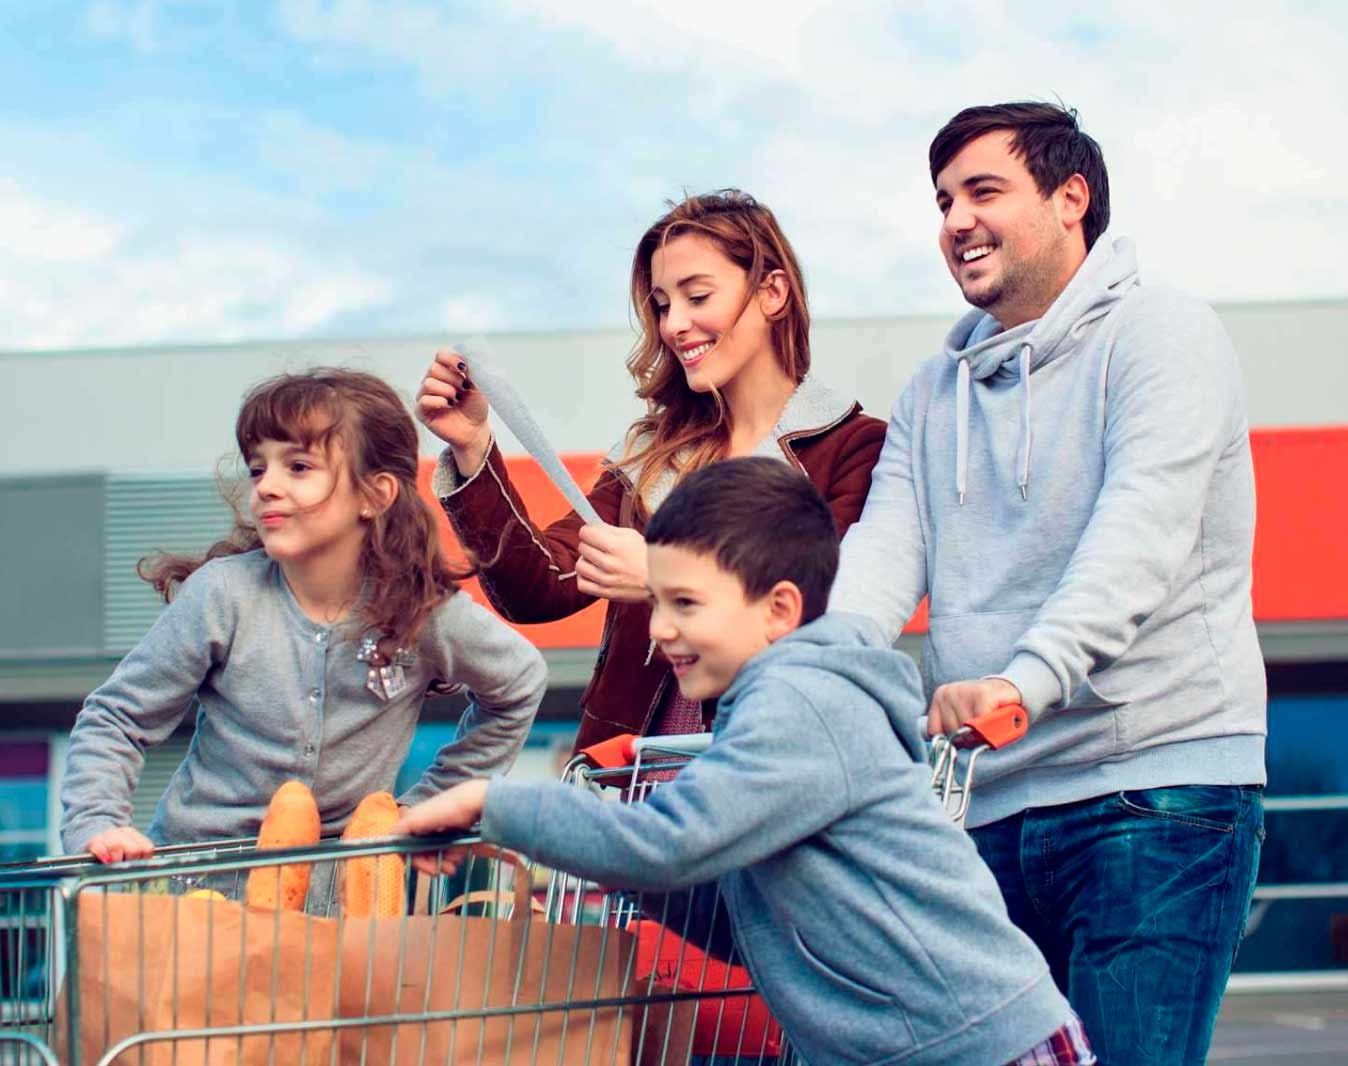 Family with two children pushing shopping cart full of grocery bags